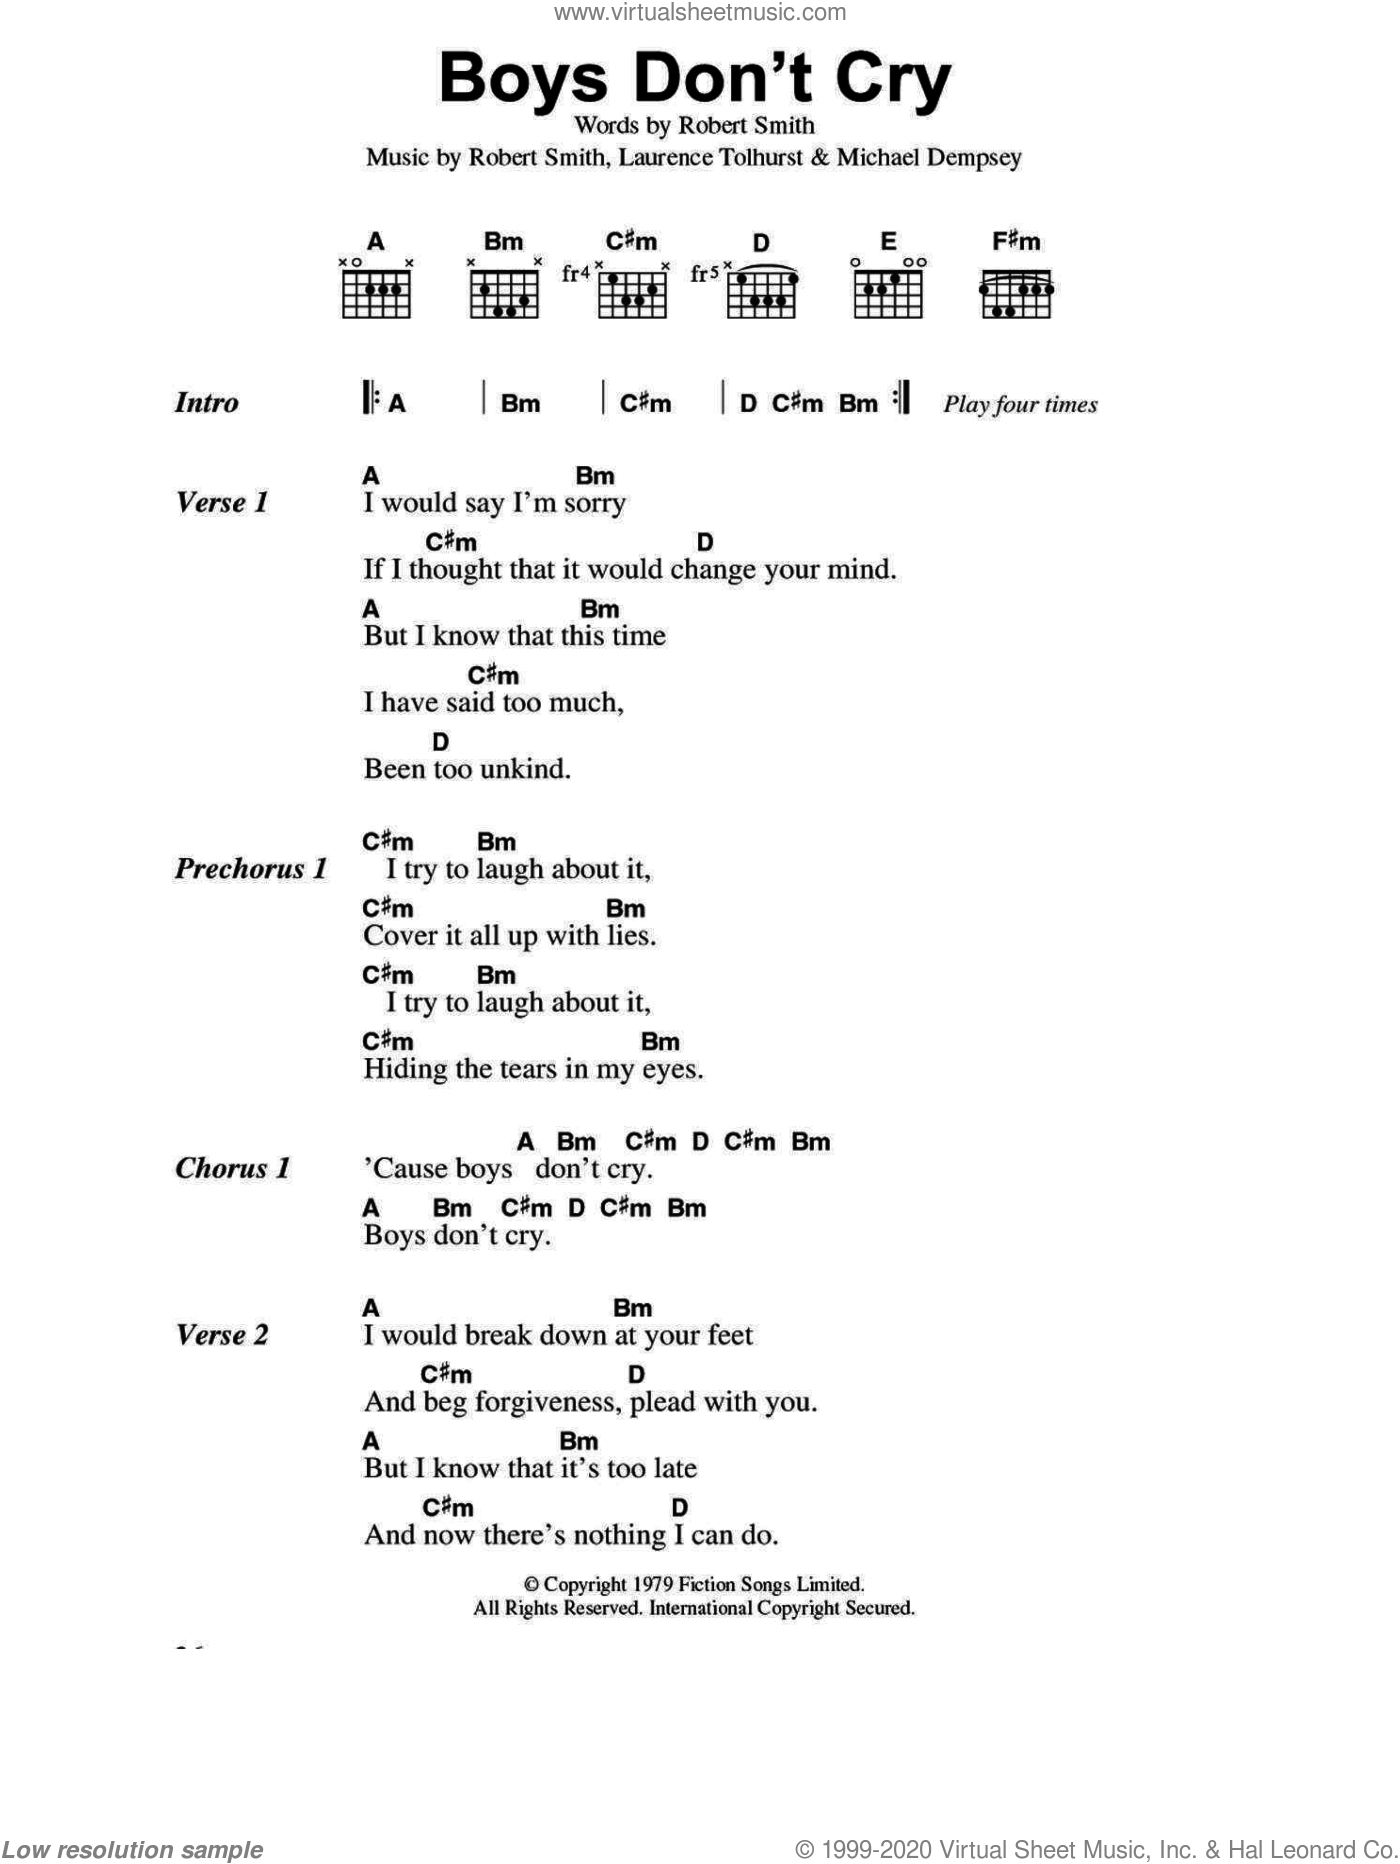 Boys Don't Cry sheet music for guitar (chords) by Laurence Tolhurst